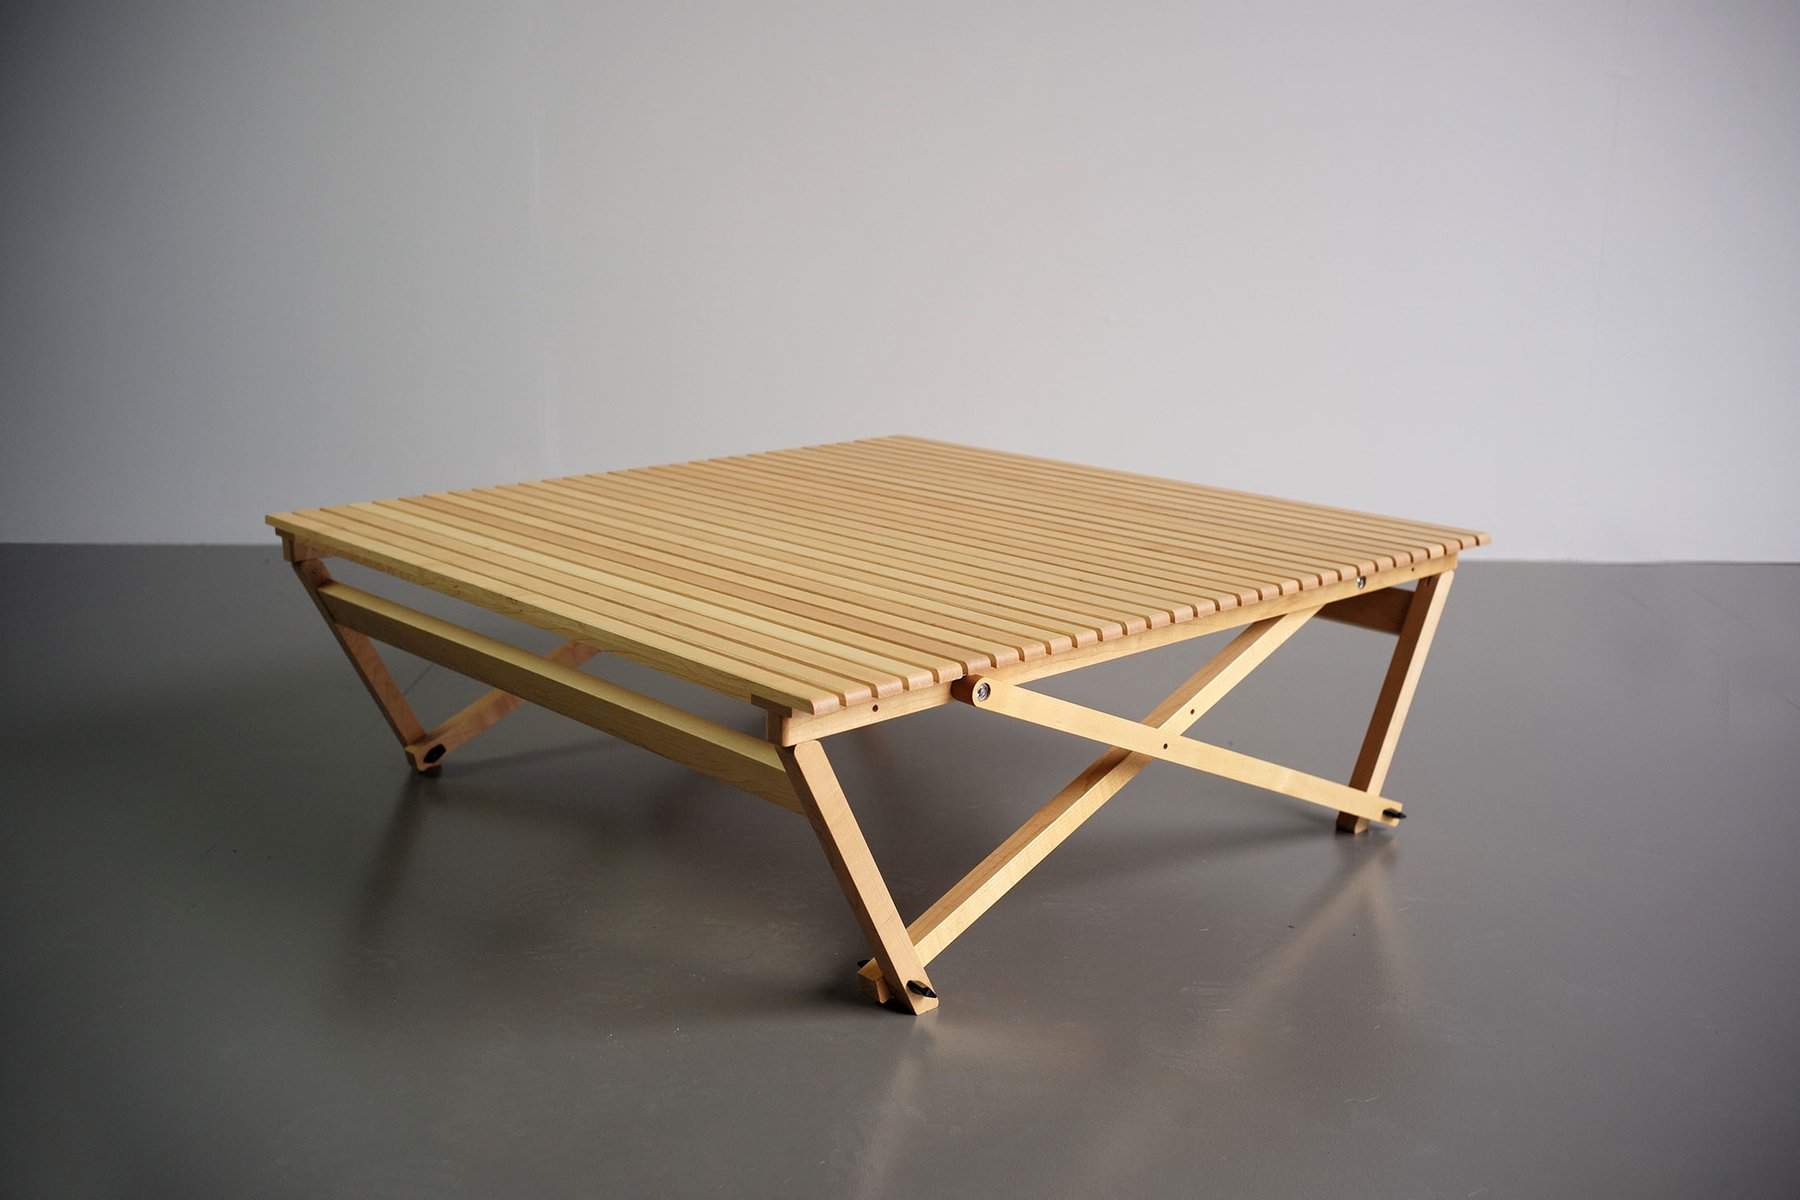 Model A6 Folding Table By Jean Claude Duboys For Maison Attitude 1980s For Sale At Pamono